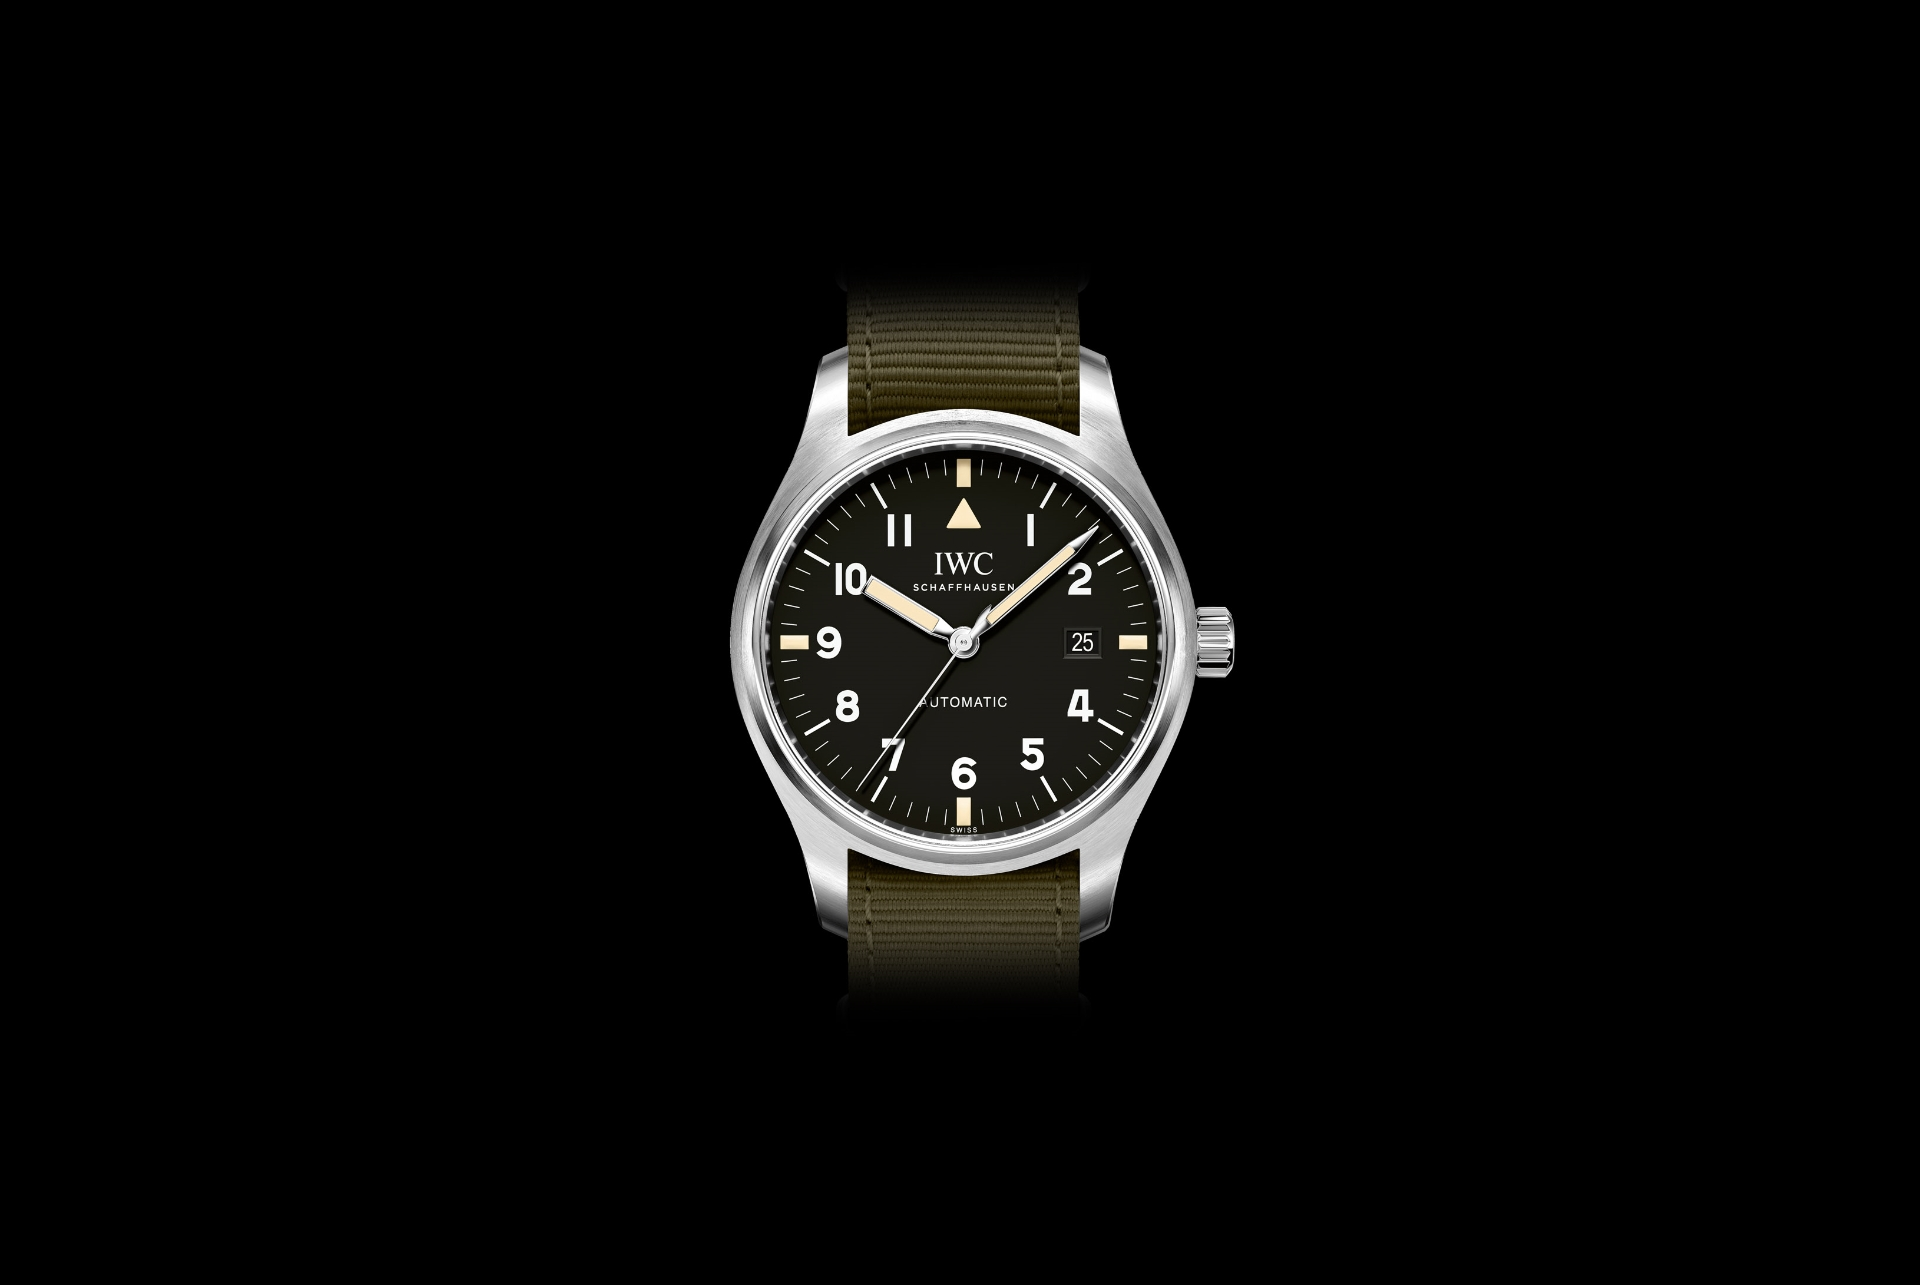 IWC's Pilot's watch mark XVIII, Hodinkee